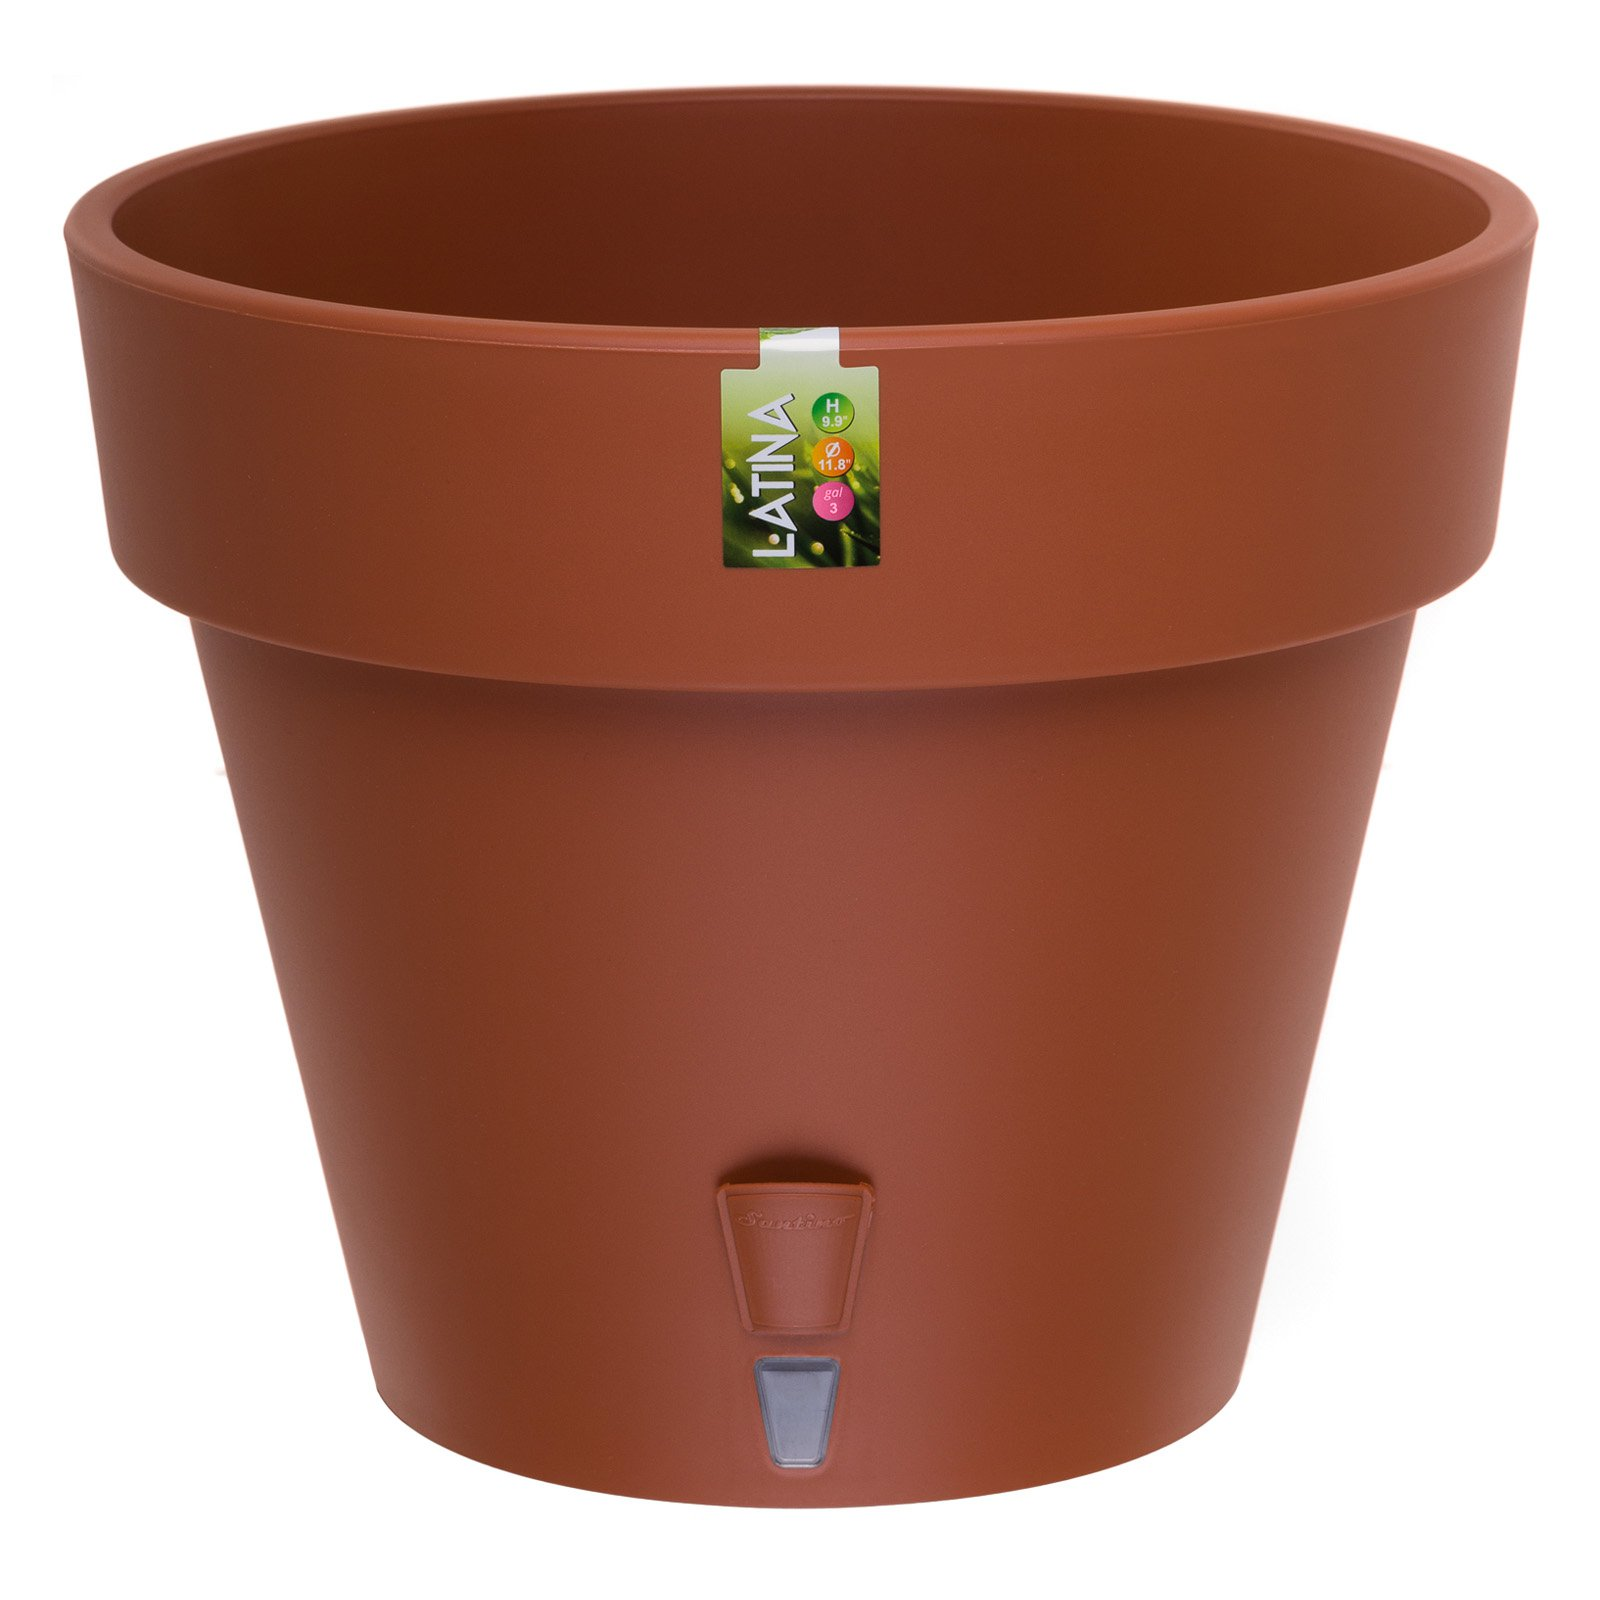 Latina Self watering planter 9.2 inch Terracotta